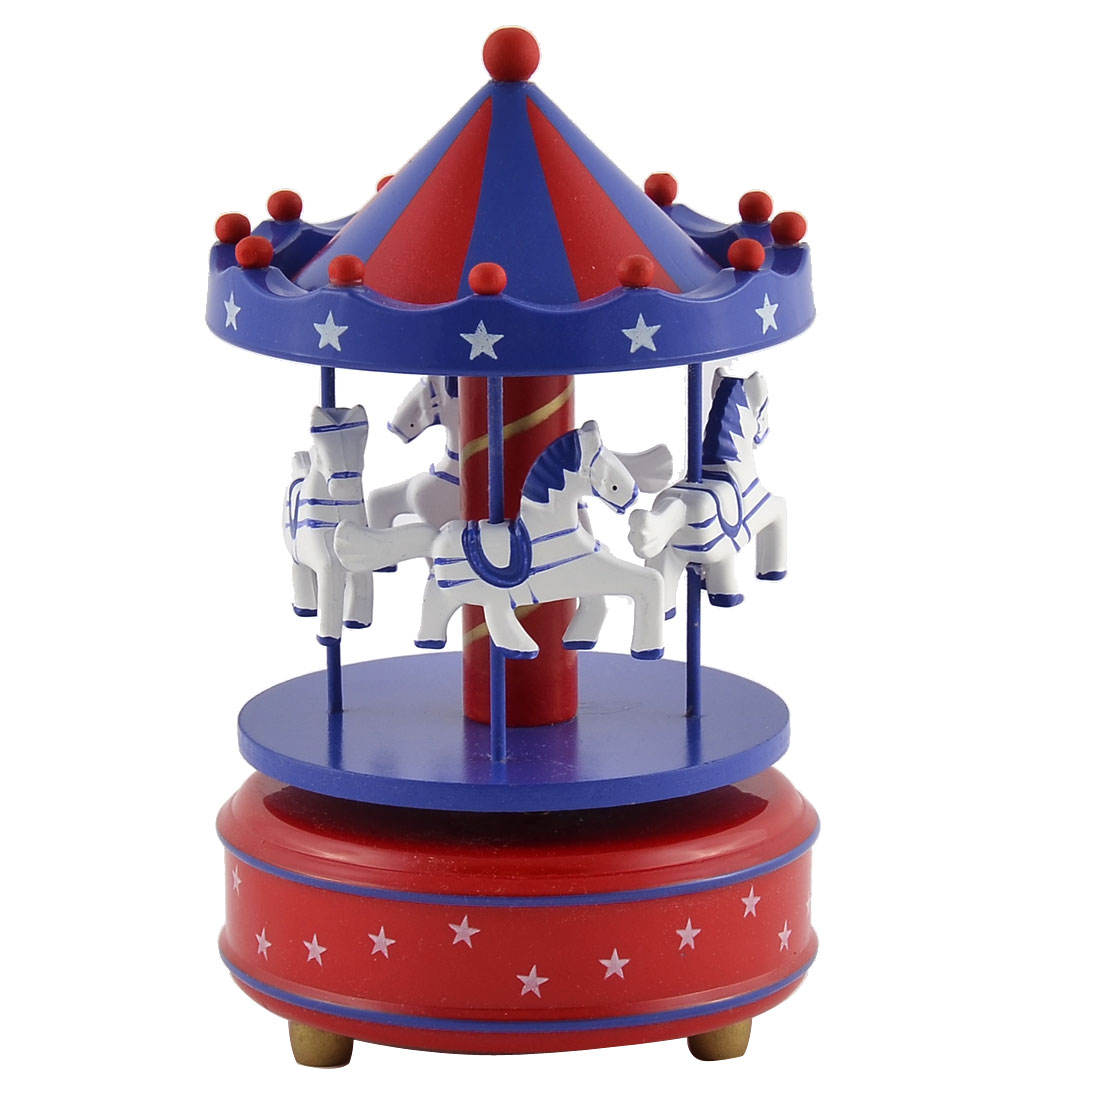 Plastic Star Pattern Merry-Go-Round Carousel Music Box Indigo Blue Red